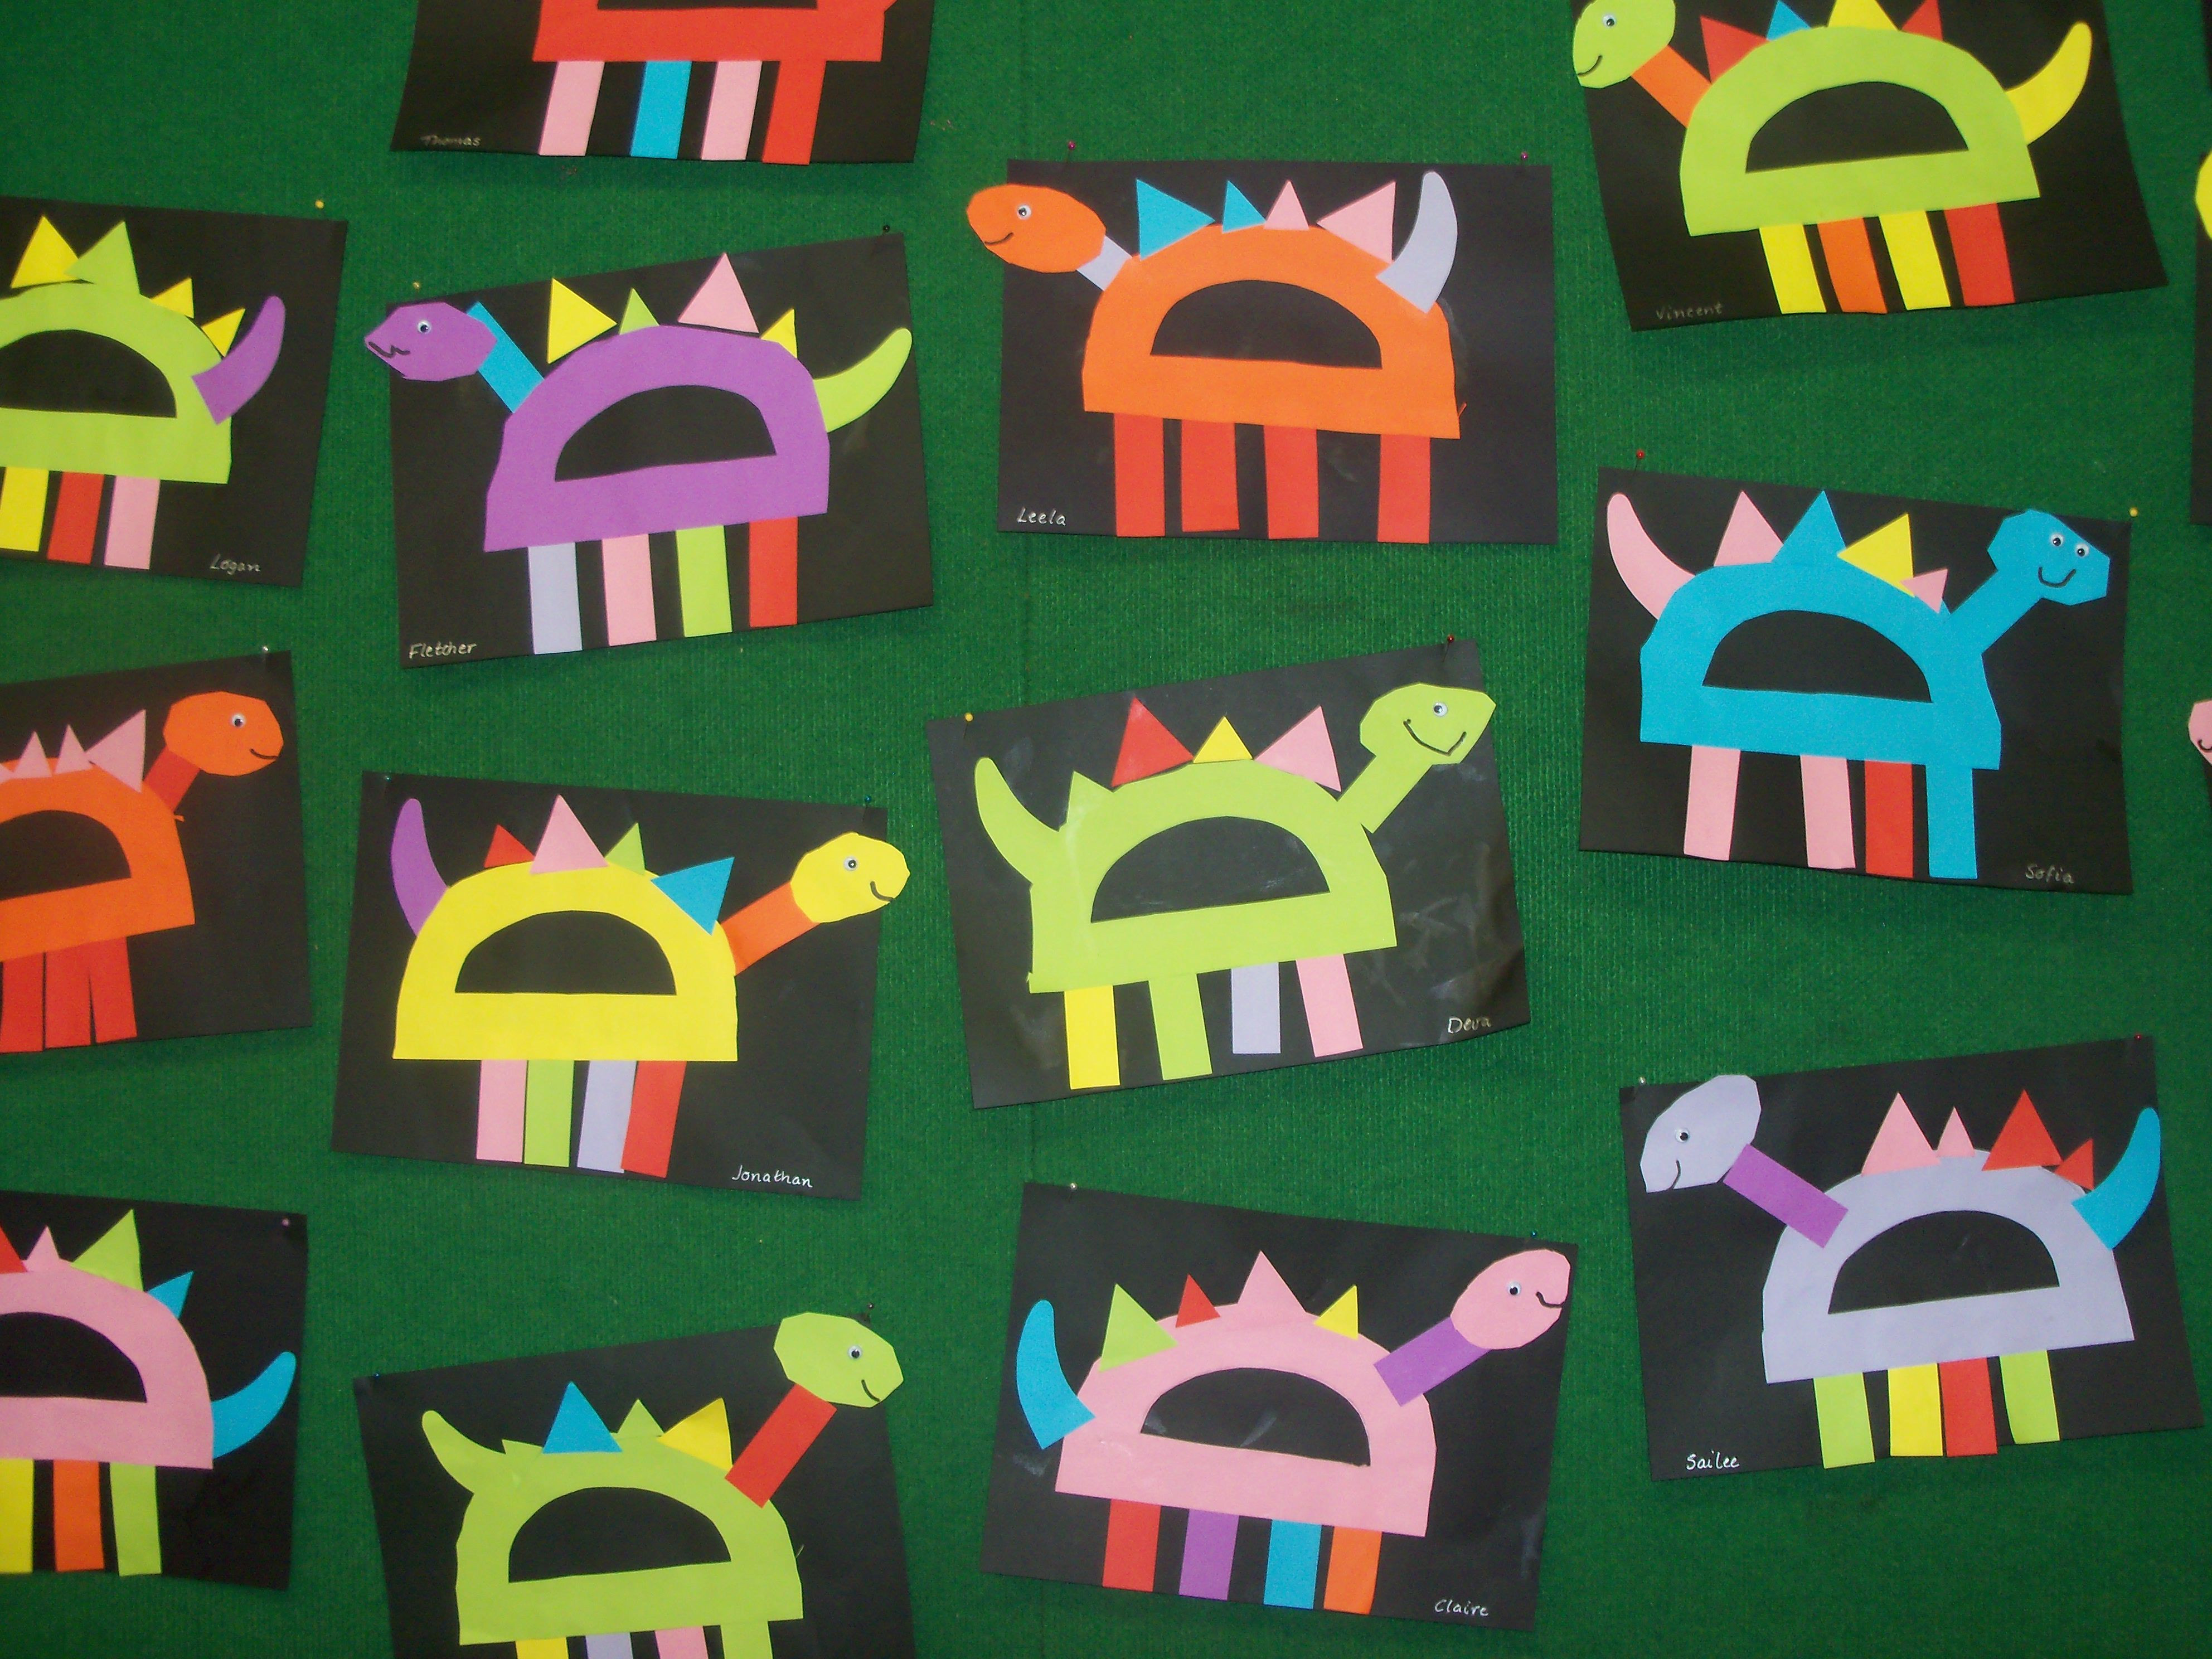 Best ideas about D Crafts For Preschoolers . Save or Pin Best 25 Letter d crafts ideas on Pinterest Now.